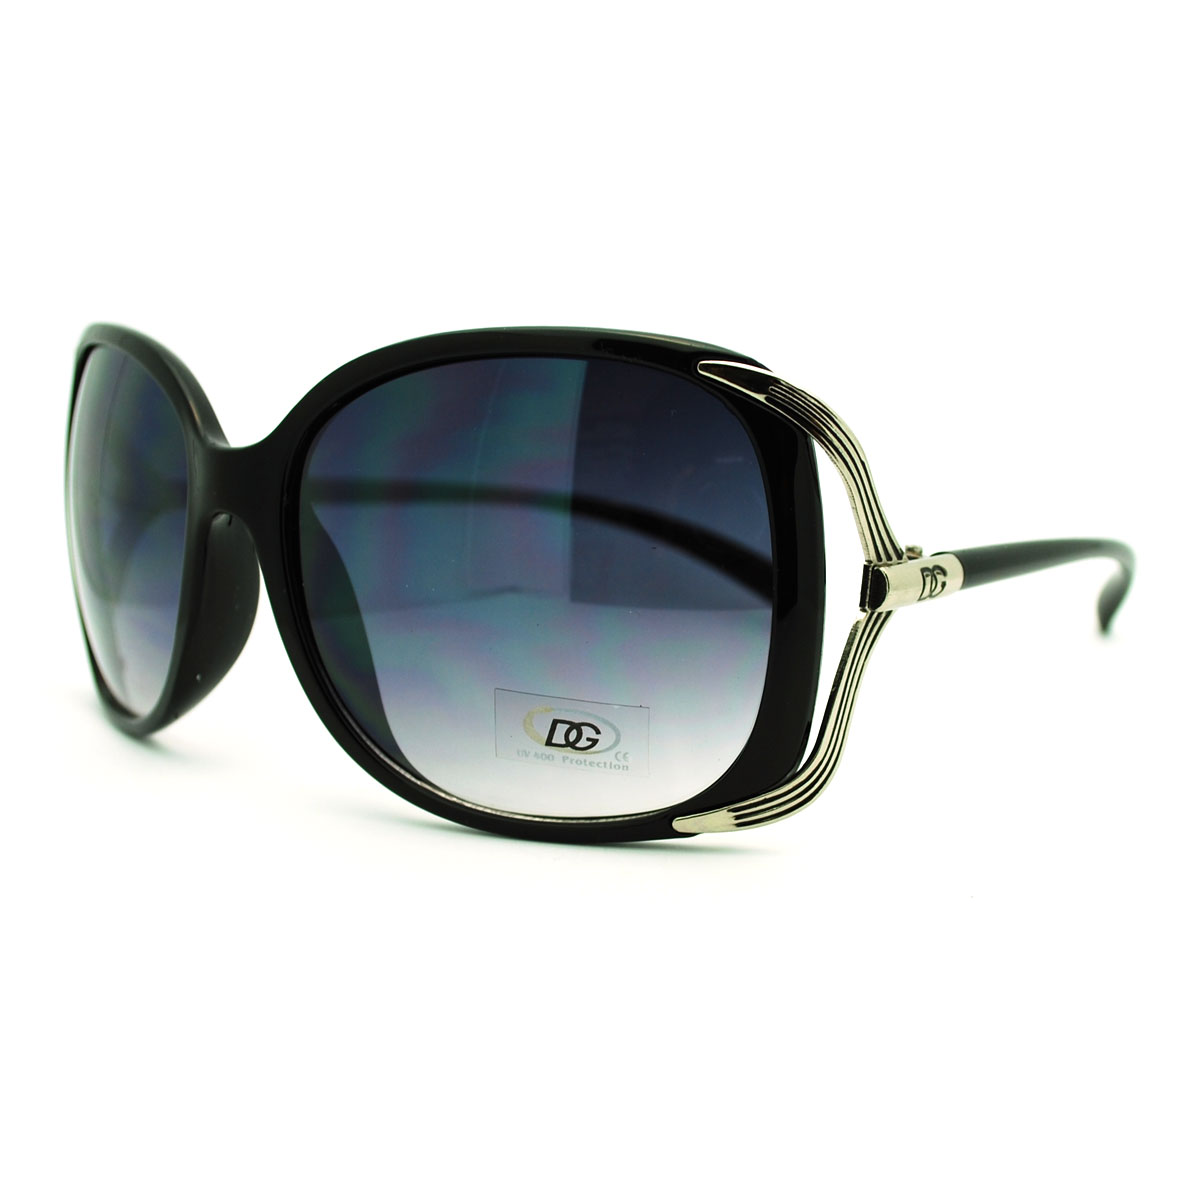 403266d888 D g Sunglasses Butterfly